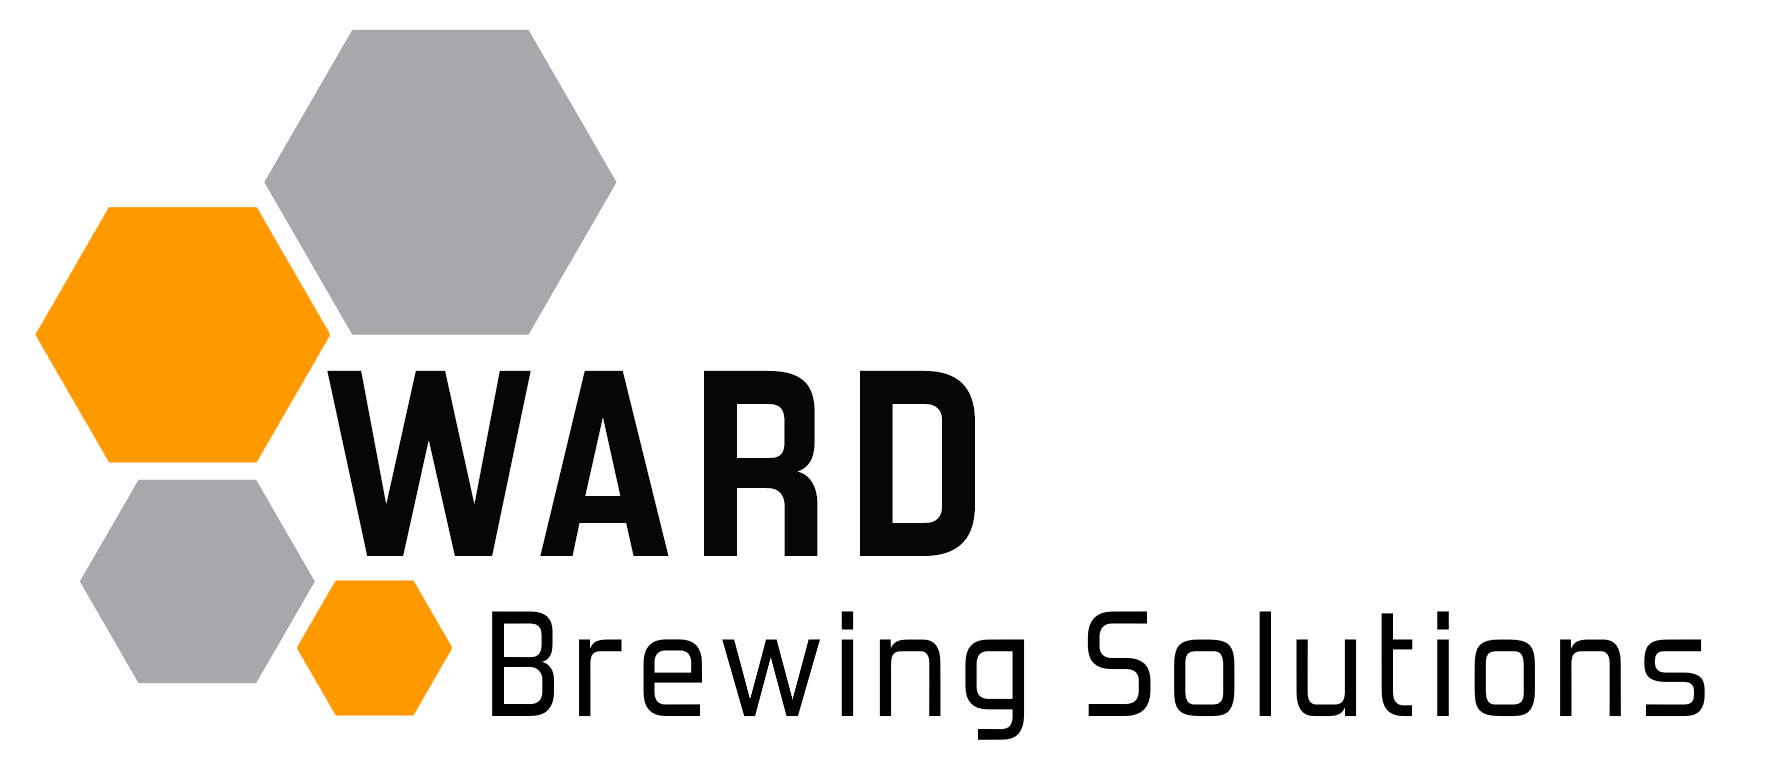 ward_brew_logo_white_big